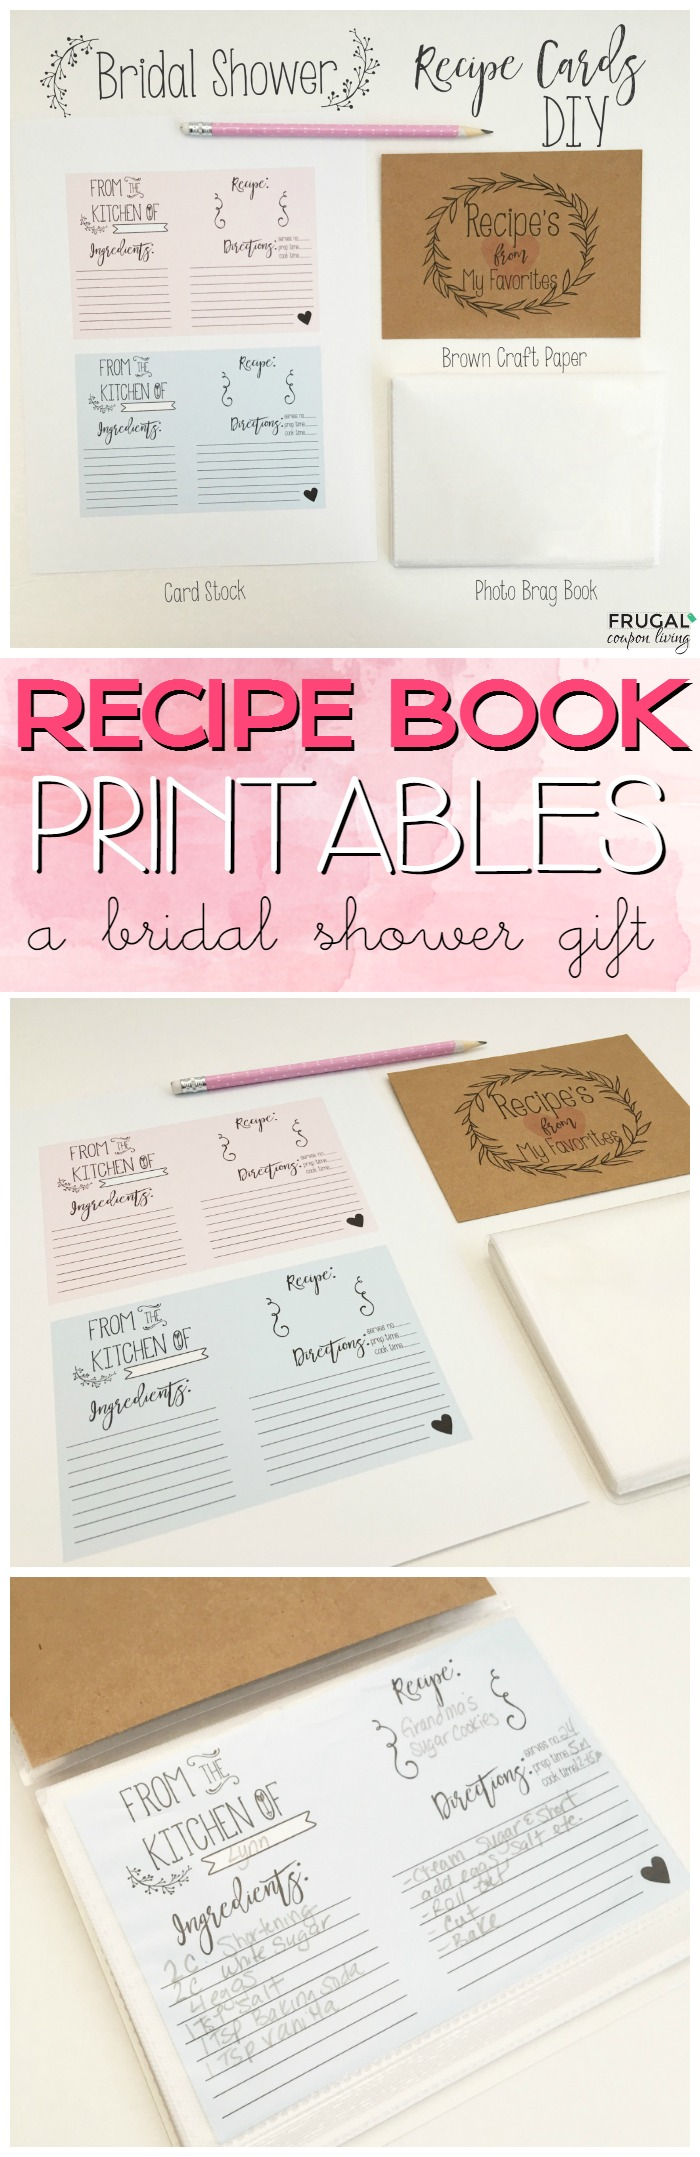 Book Cover Printable Questions : Free bridal shower recipe printable